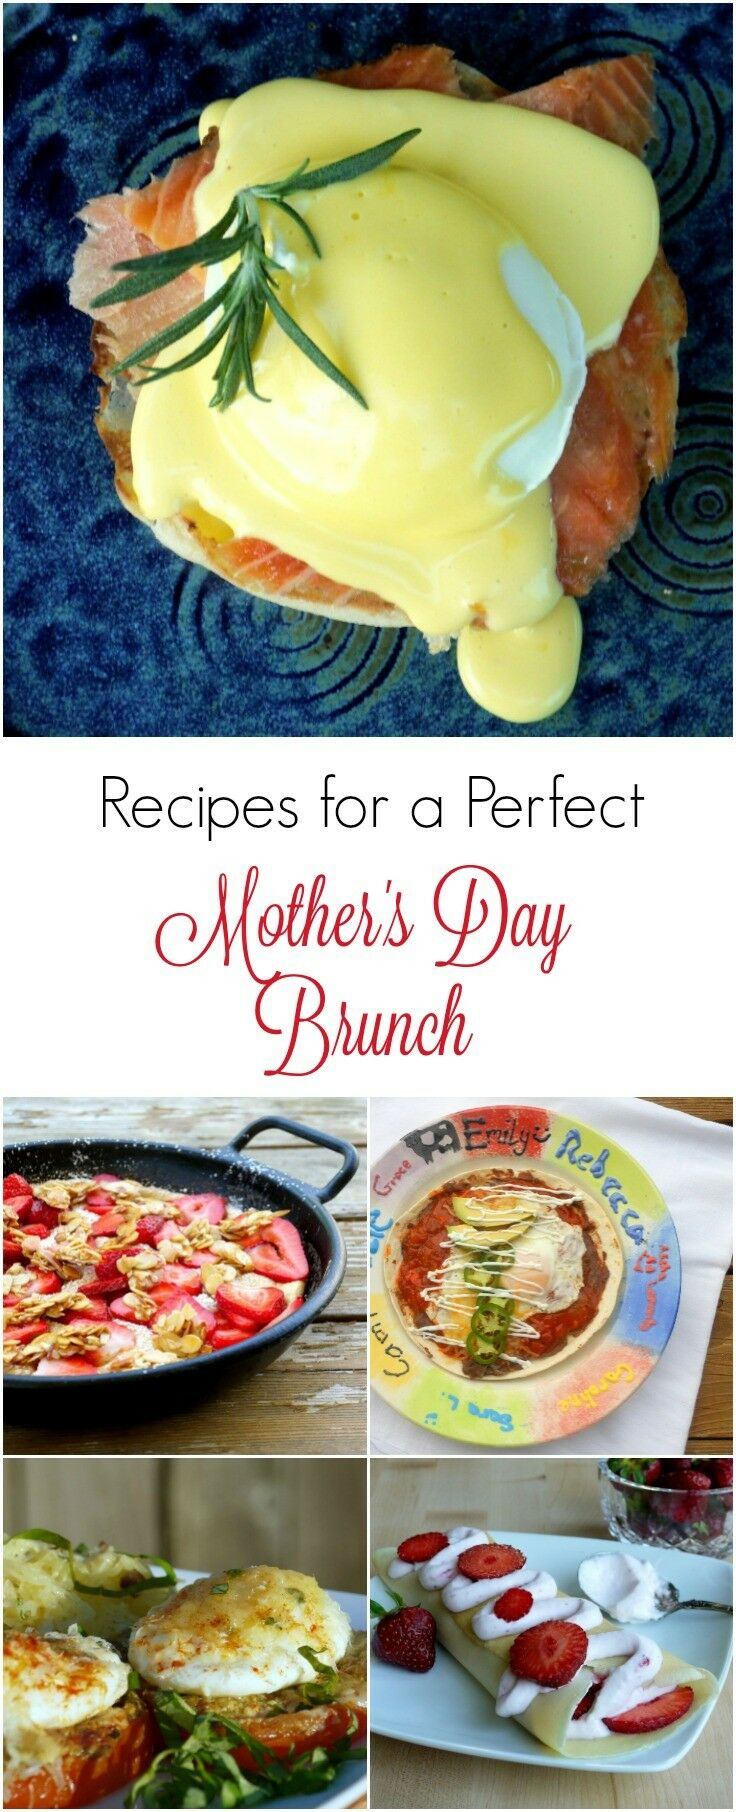 Best Mother's Day Brunch Recipes | The Good Hearted Woman